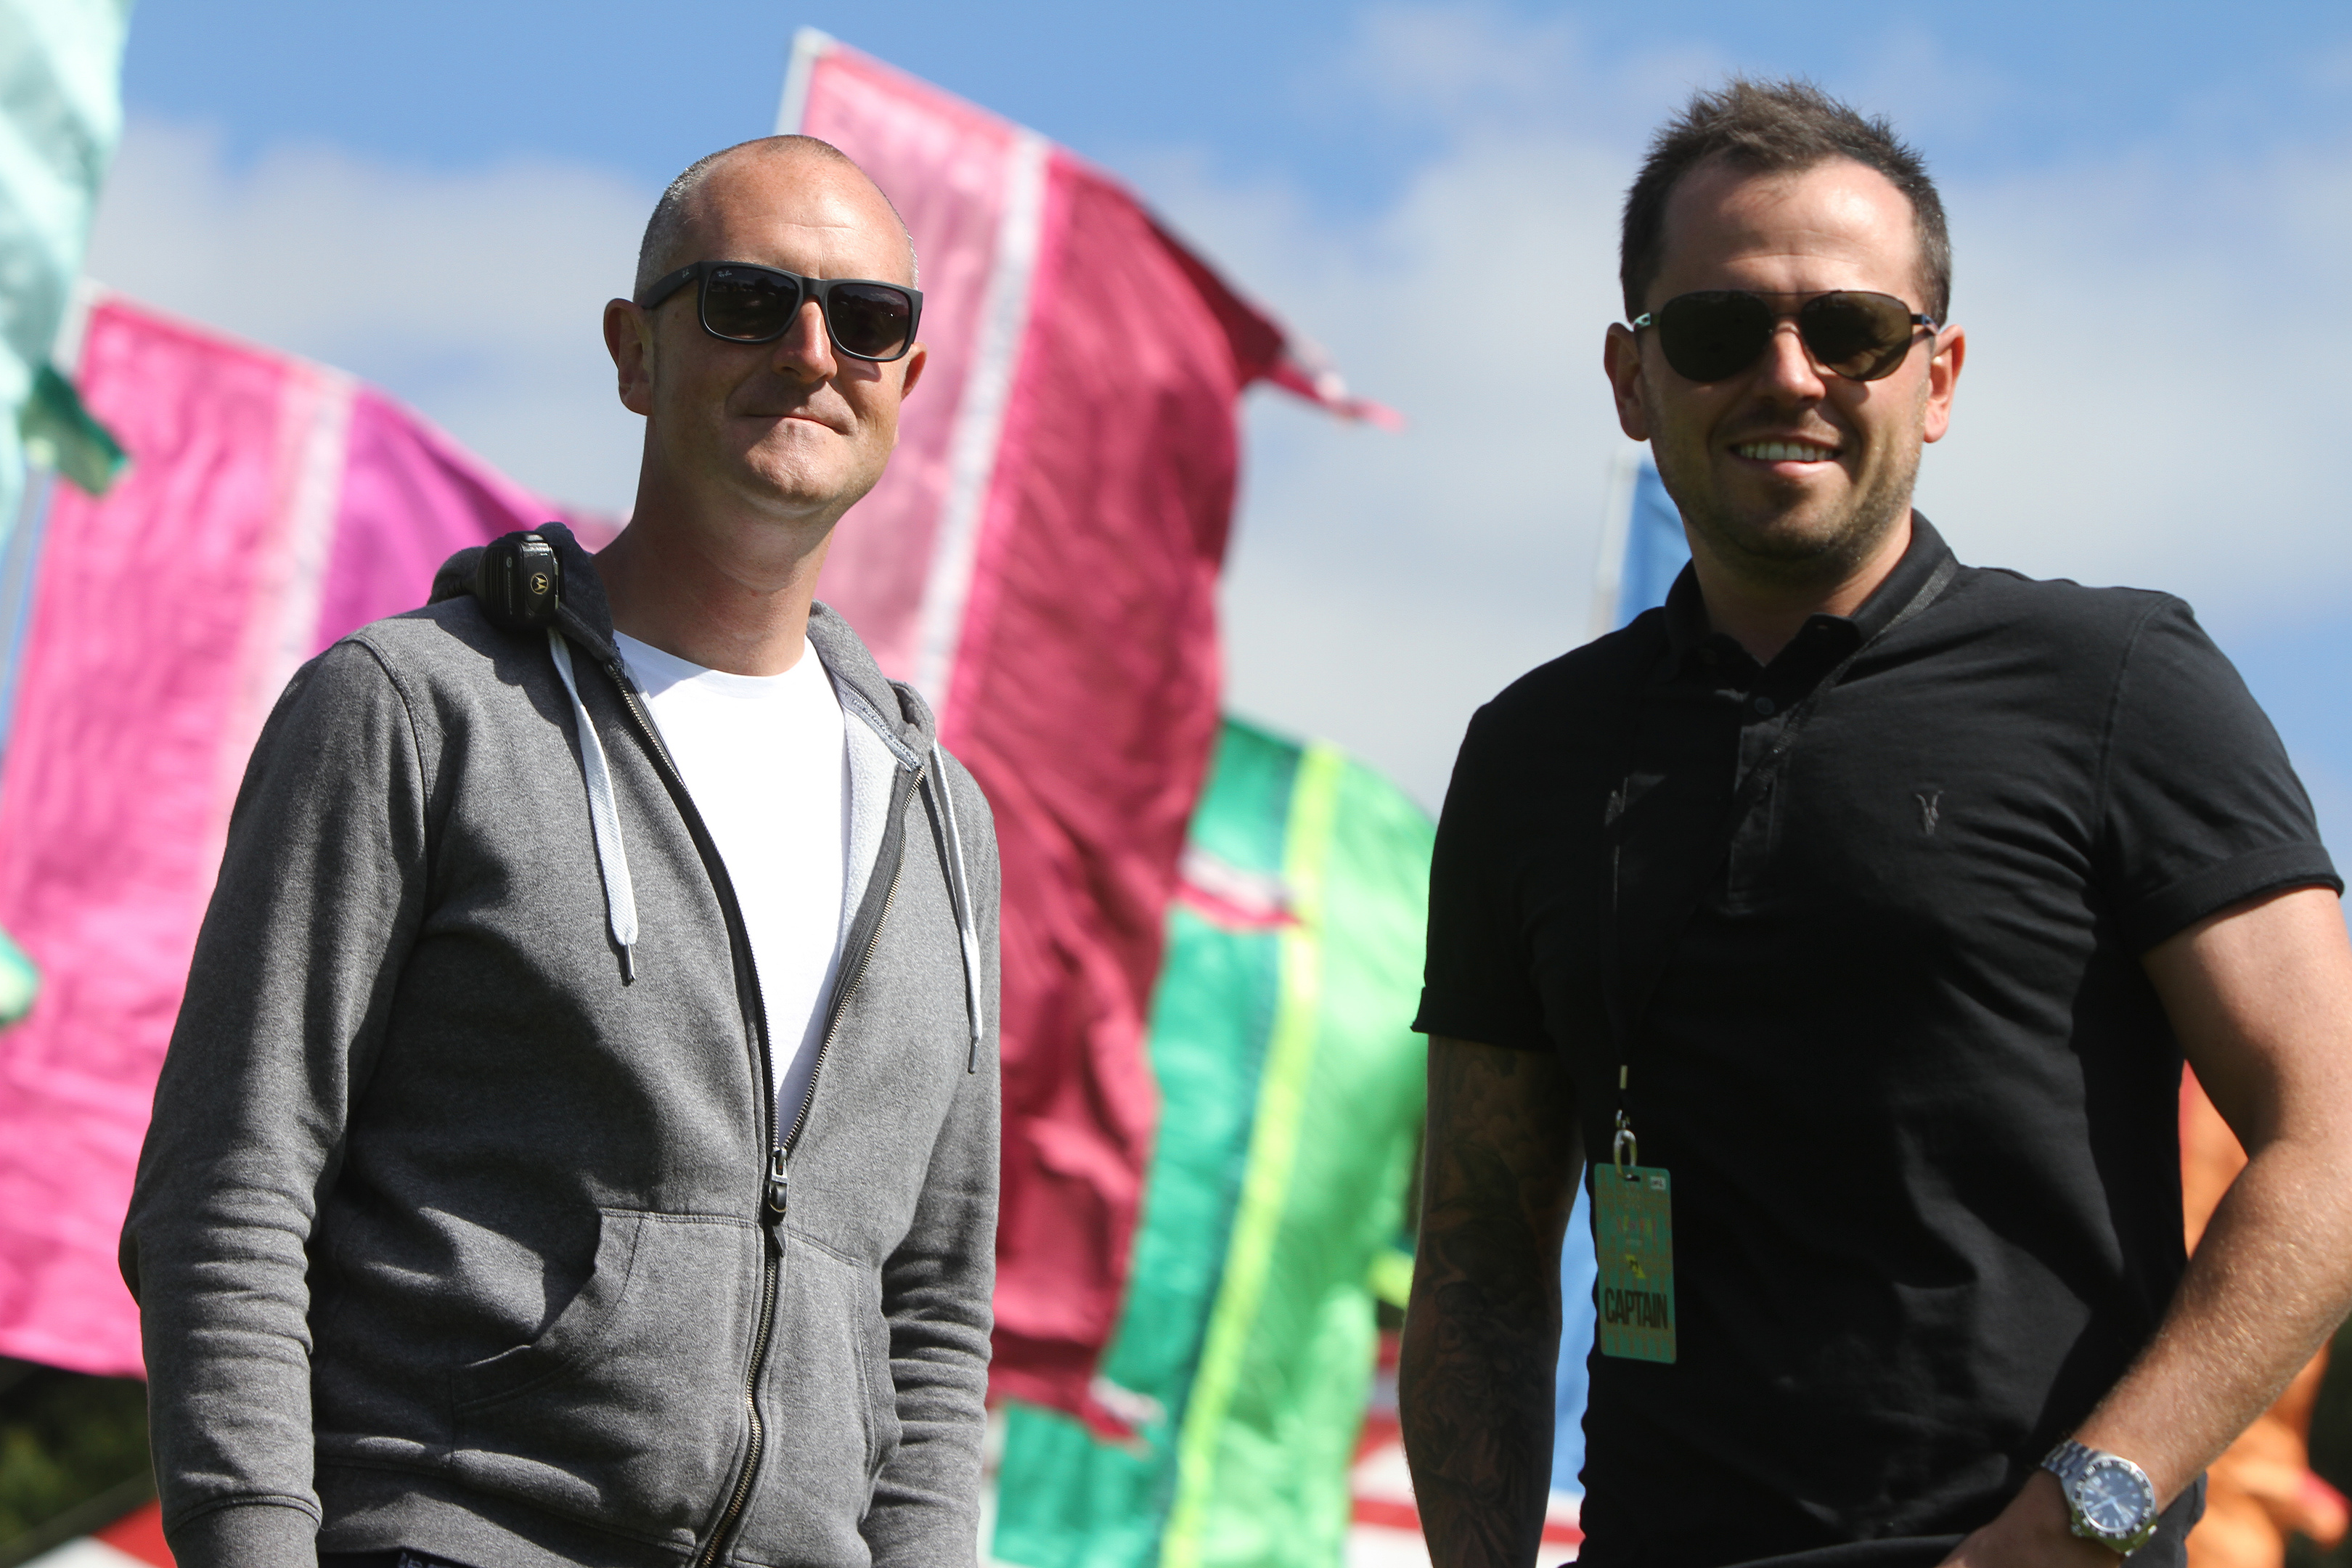 Steve Reynolds, festival event manager, and Craig Blyth, festival director at the Carnival 56 site.